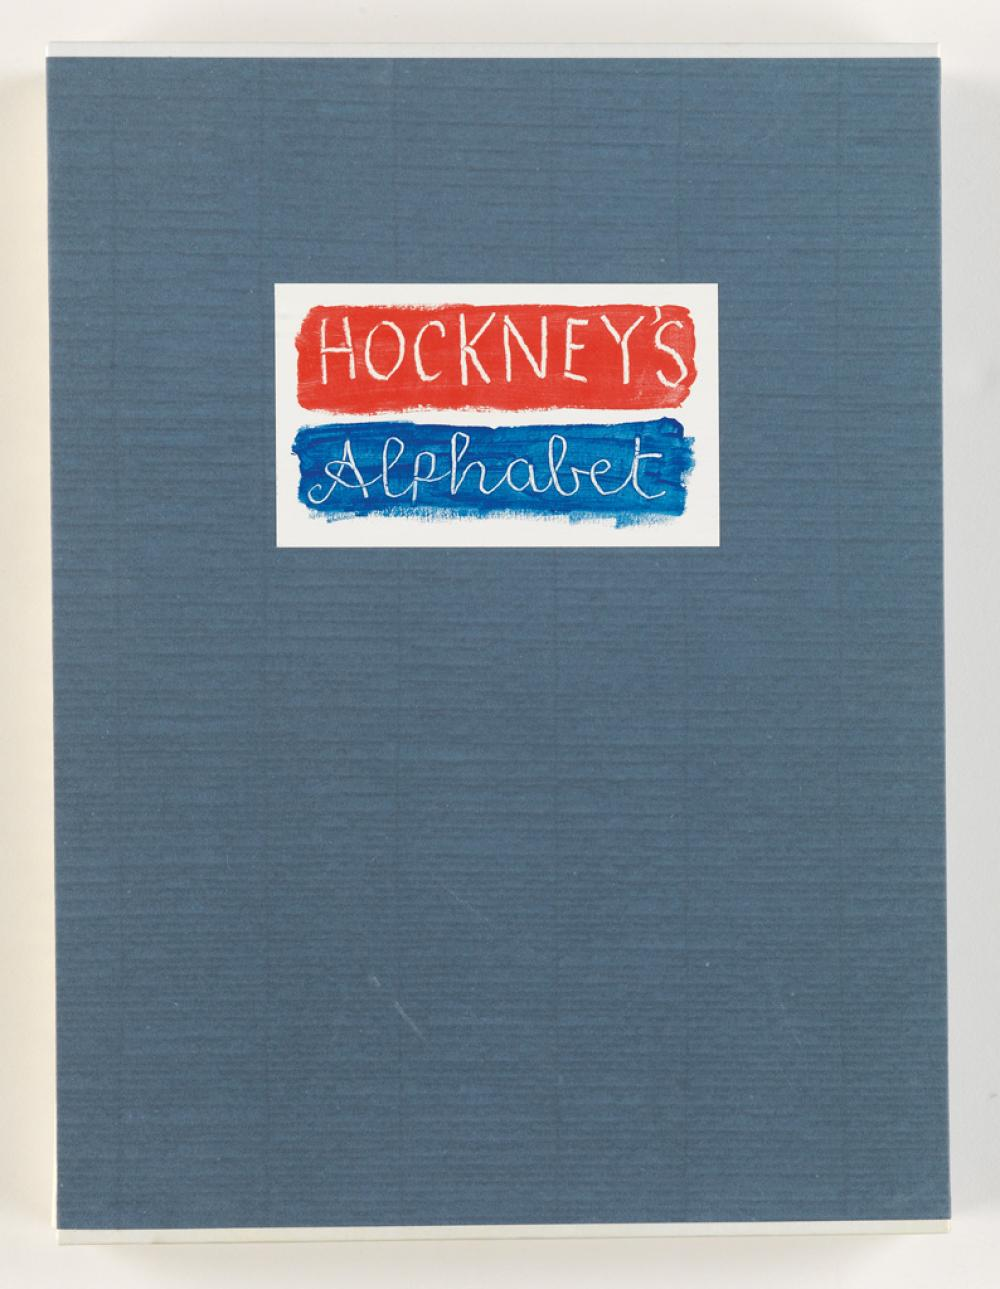 HOCKNEY, DAVID. Hockney''s Alphabet.